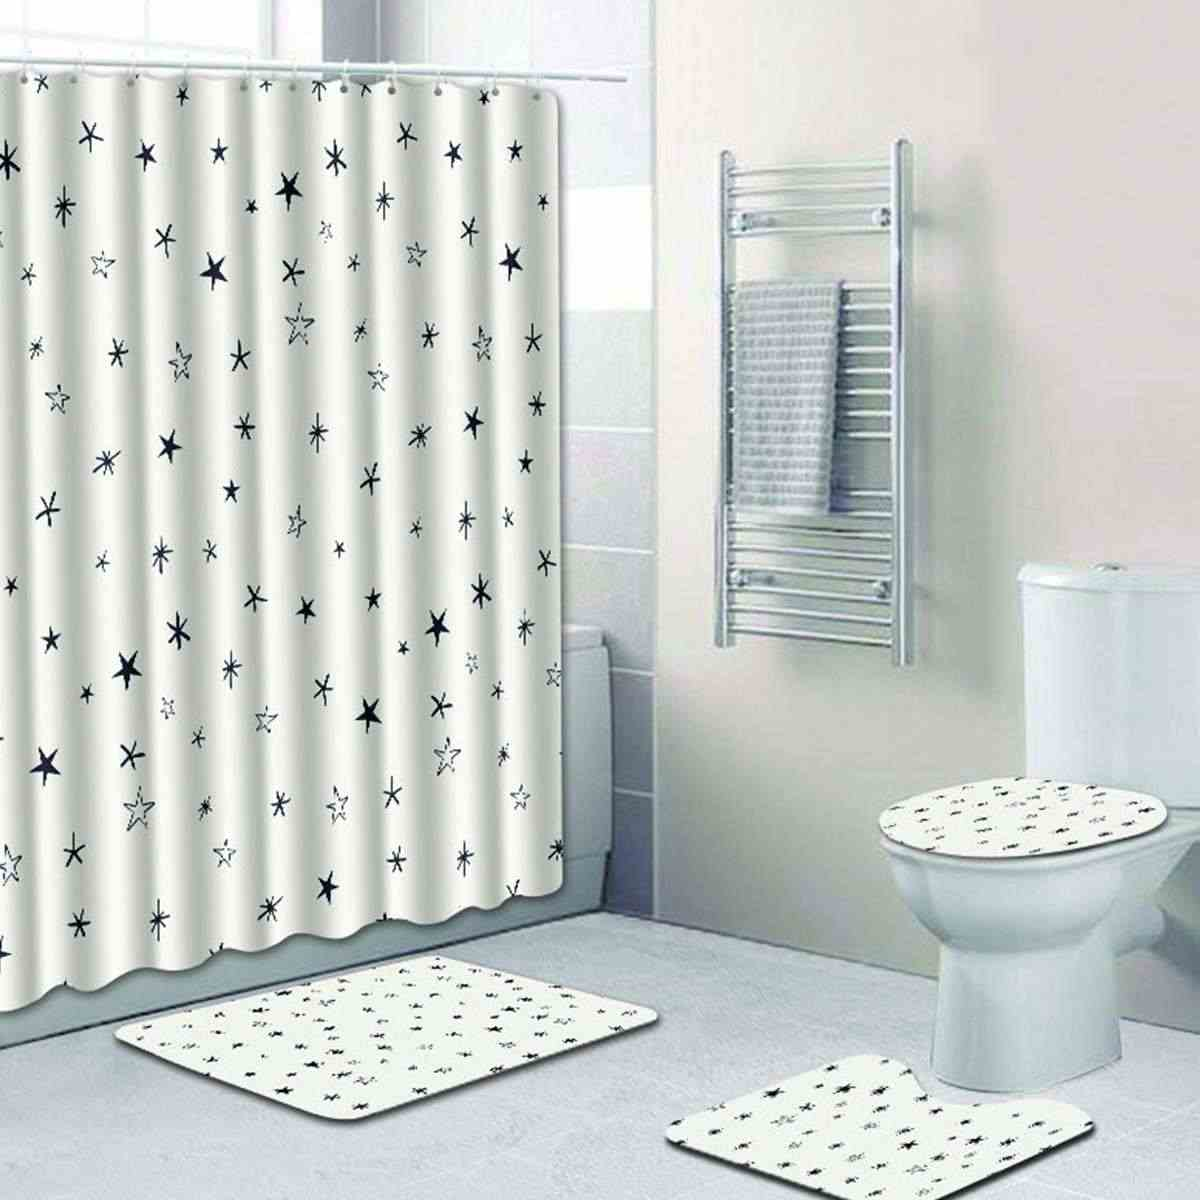 Bath Mat Shower Curtain Bathroom